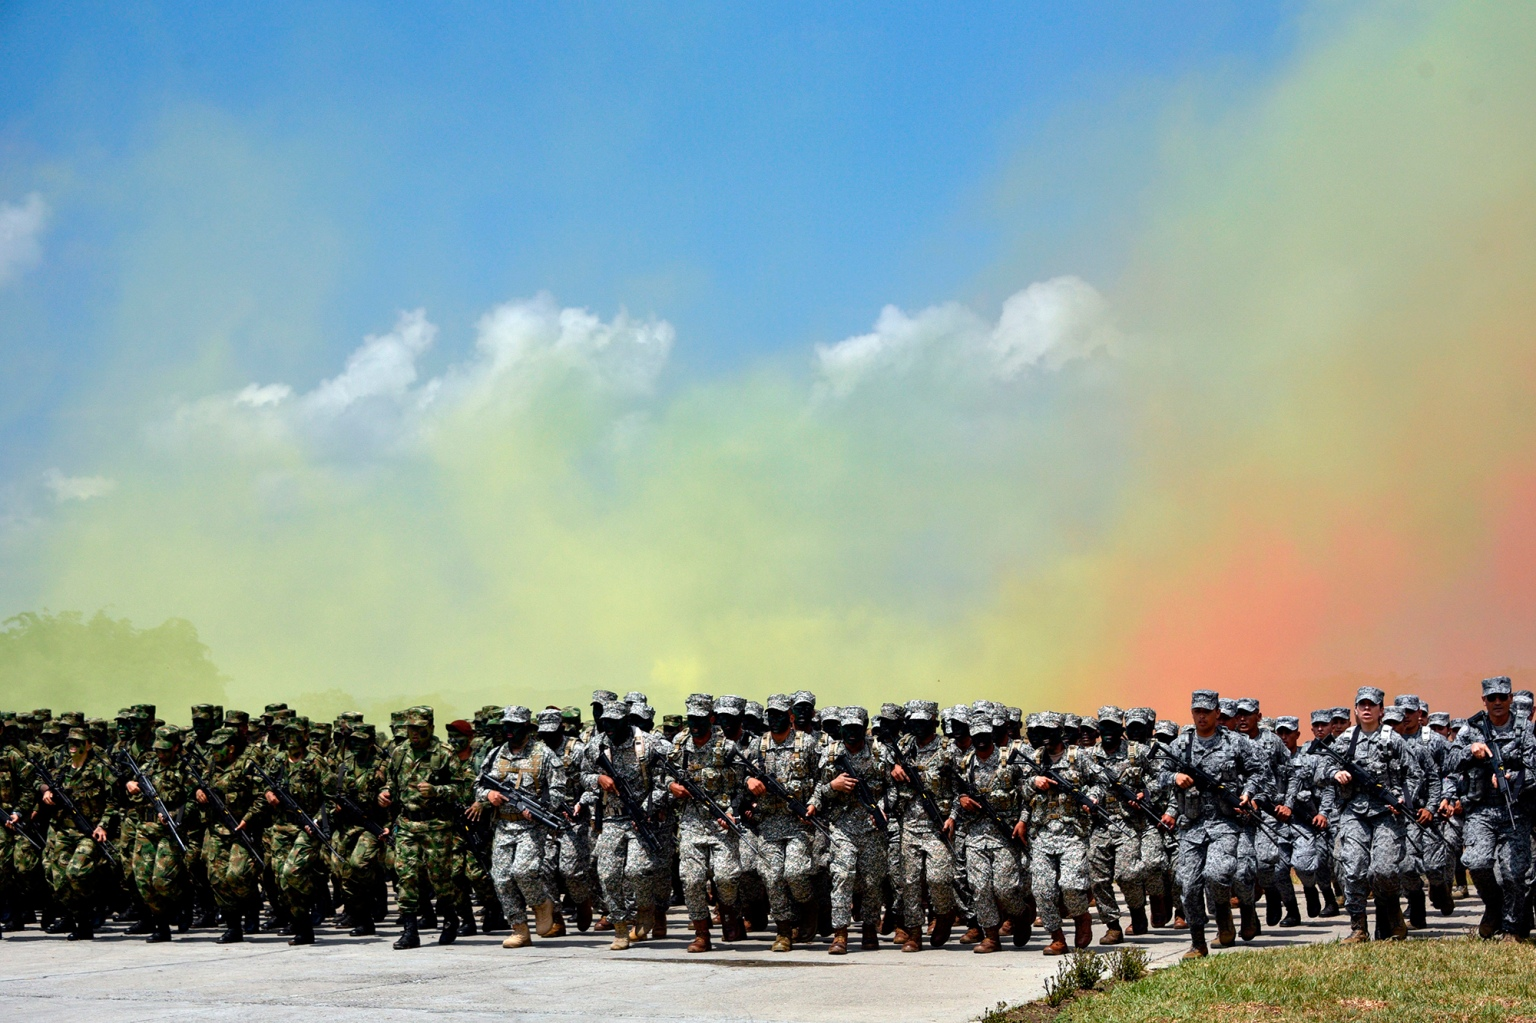 Colombian soldiers take part in a demonstration by the military forces at President Ivan Duque's launch of the new national security and defense policy at the Tolemaida military fort in Cundinamarca department on Feb. 6. (Guillermo Legaria/AFP/Getty Images)